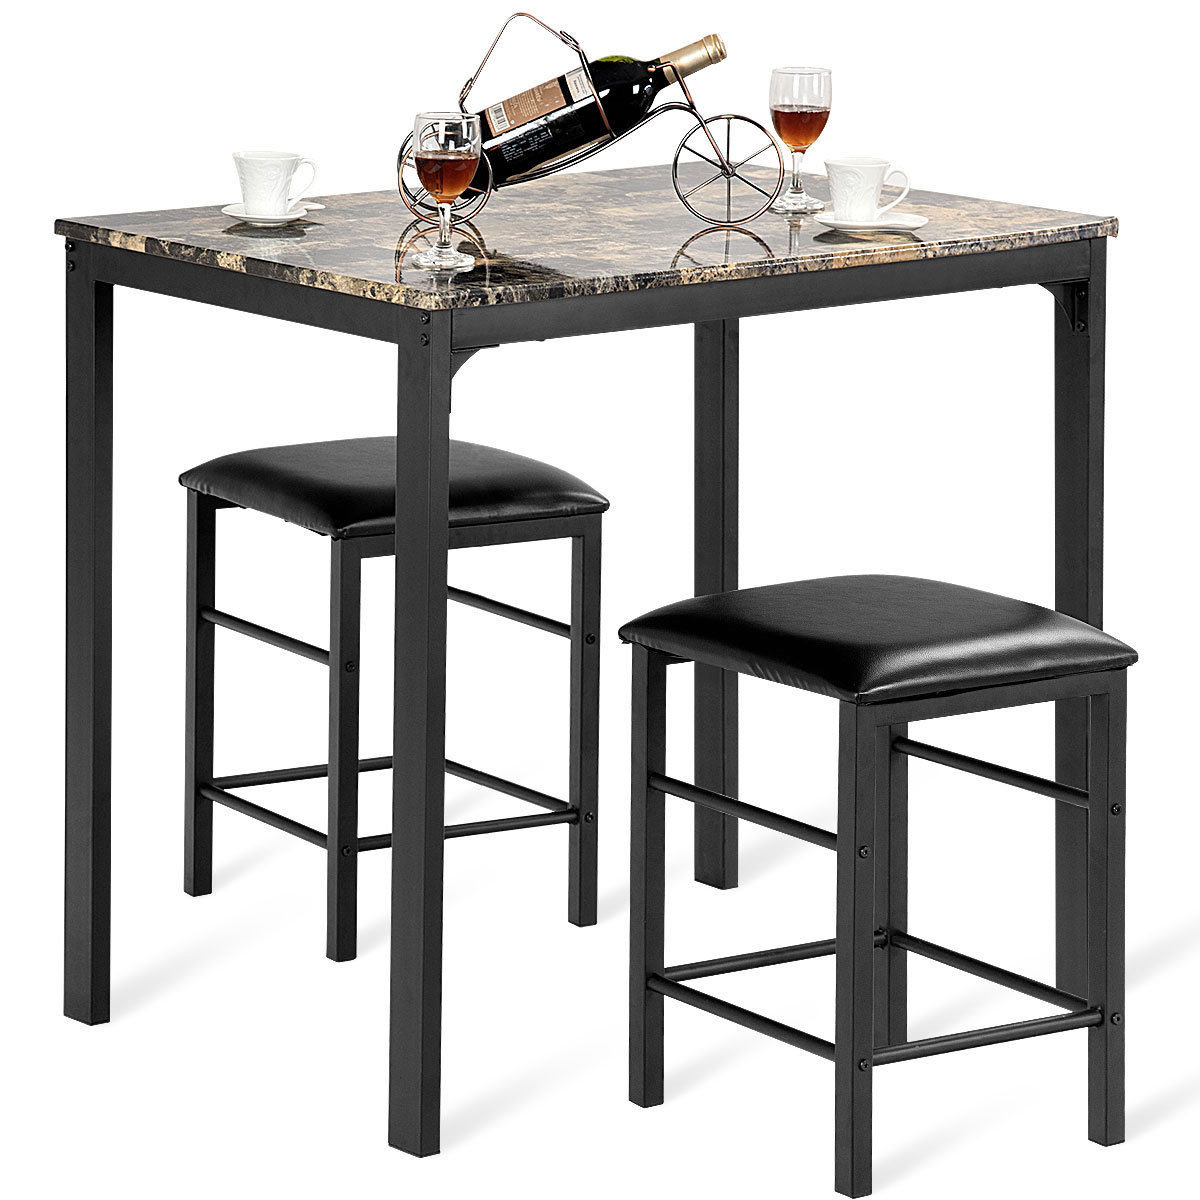 Mitzel 3 Piece Dining Set For Most Recent Hood Canal 3 Piece Dining Sets (Image 11 of 20)